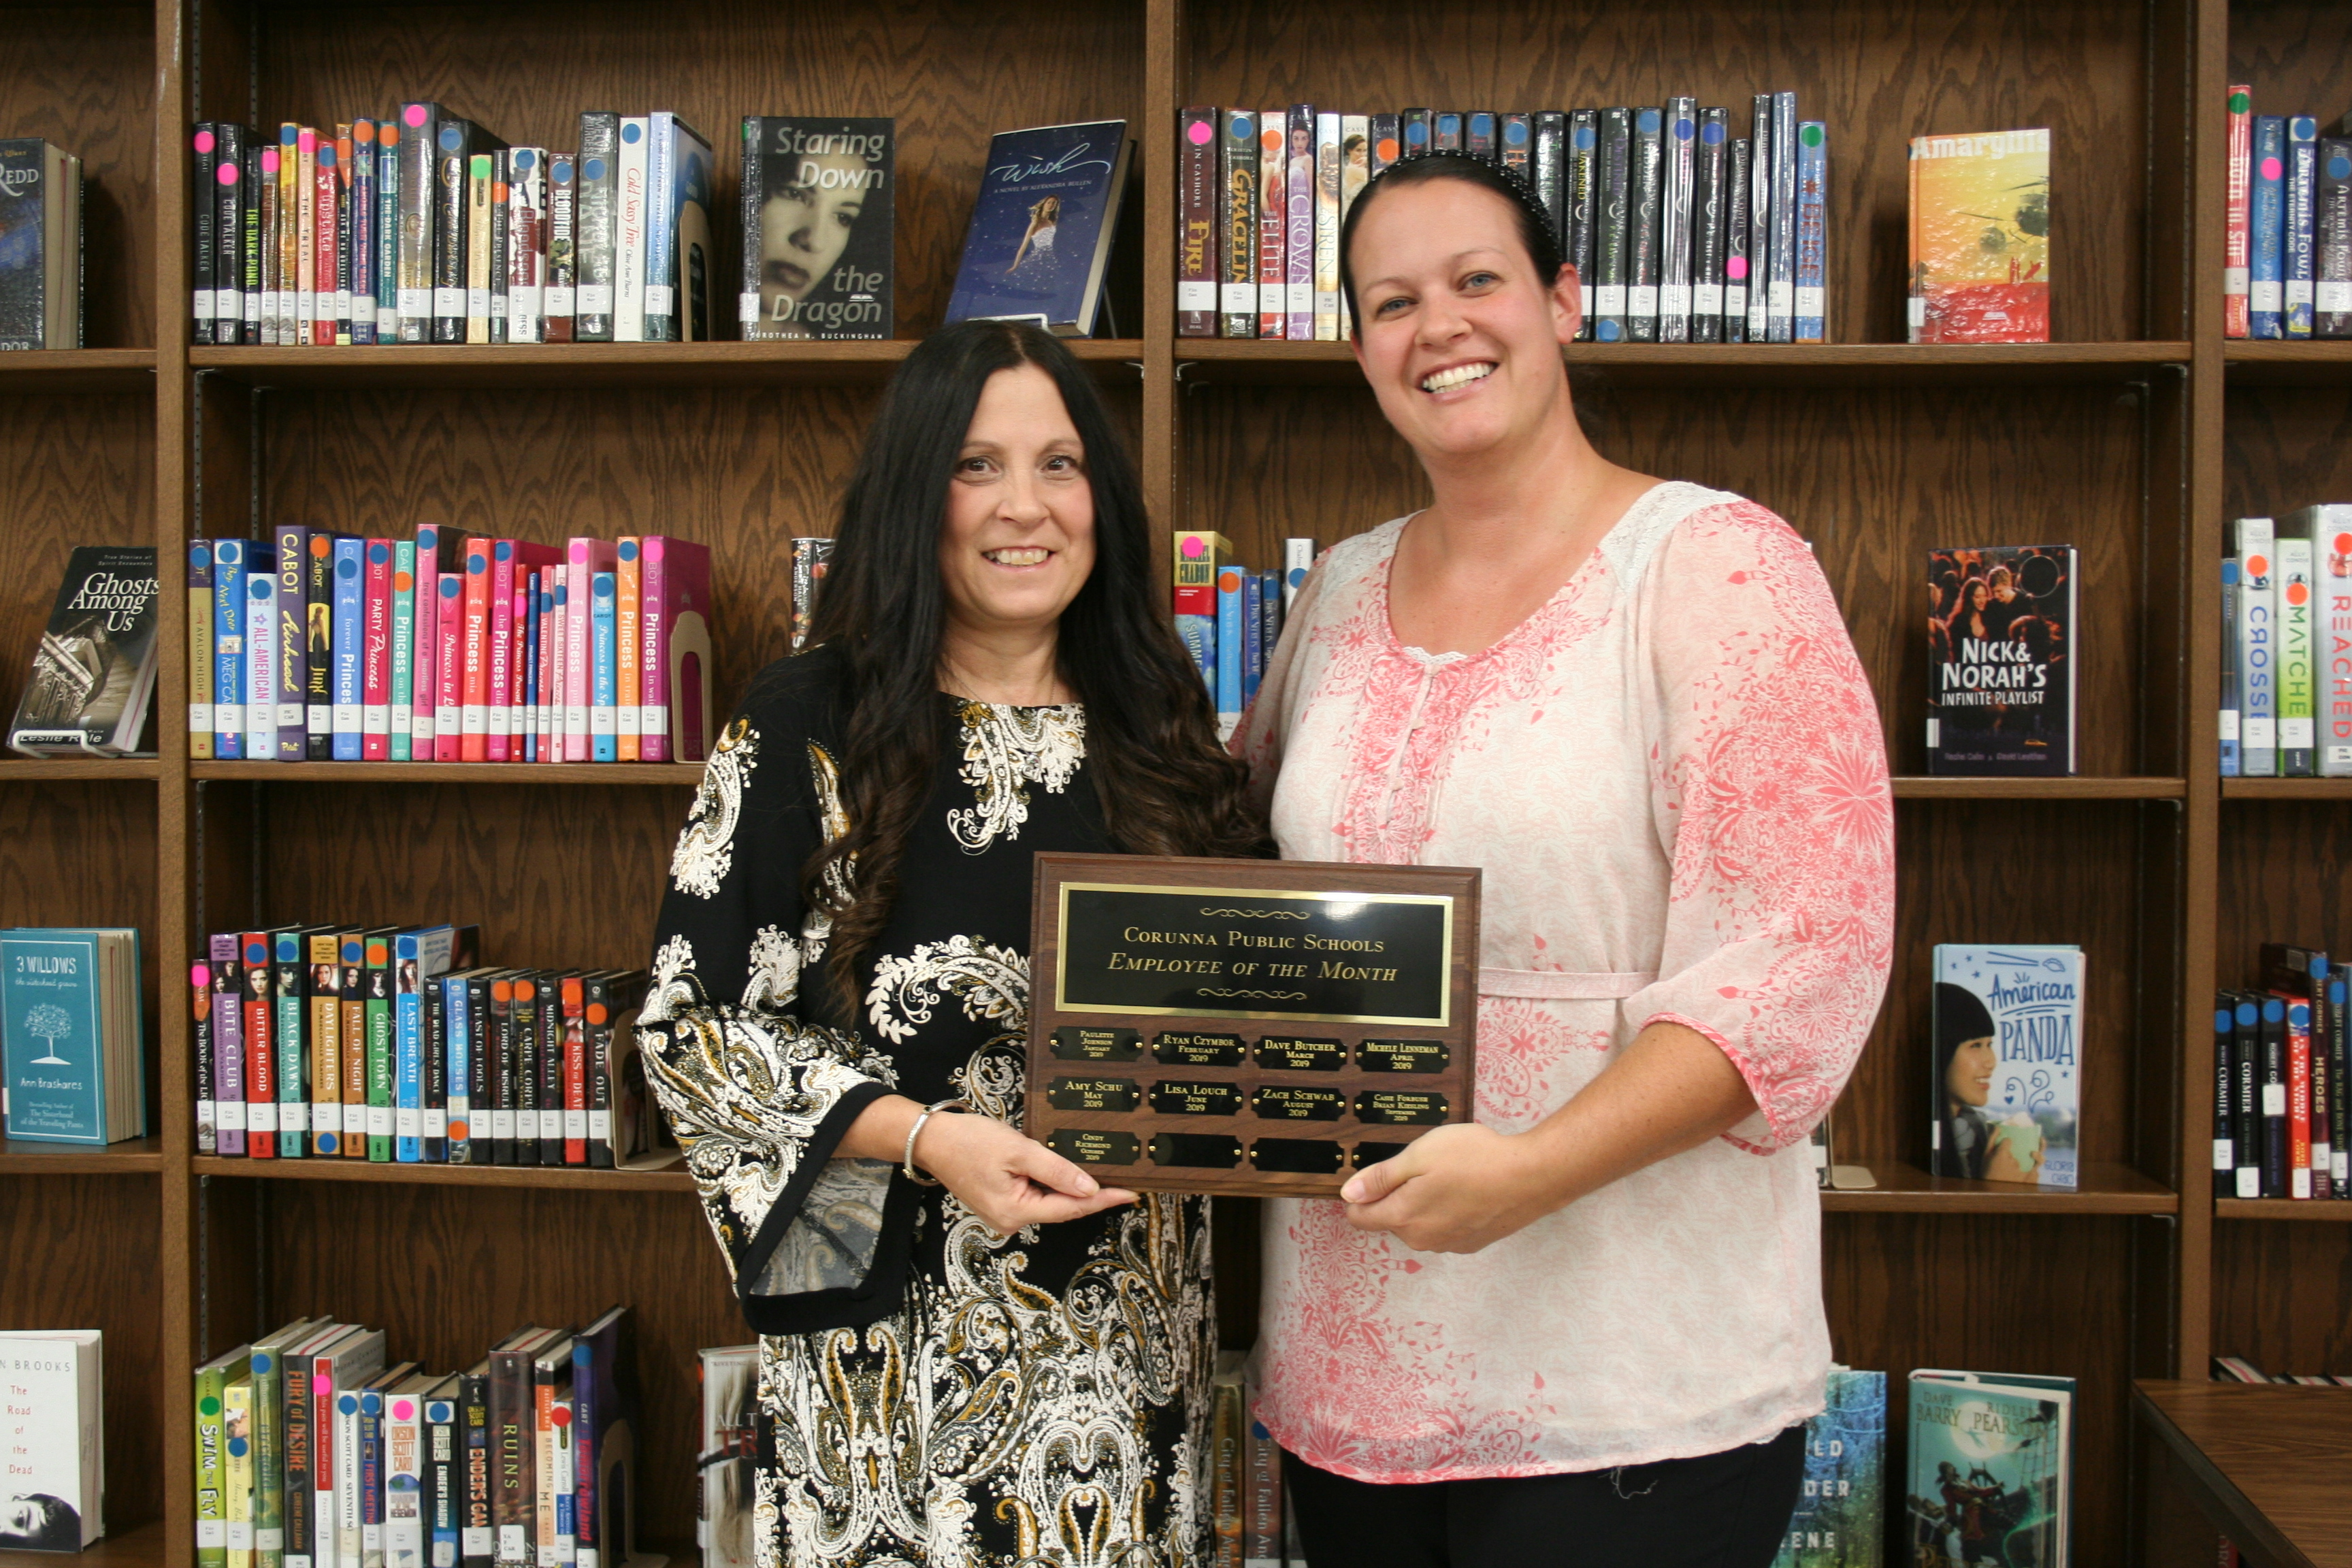 October Employee of the Month Cindy Richmond (left) with Board Trustee Sara Beldyga